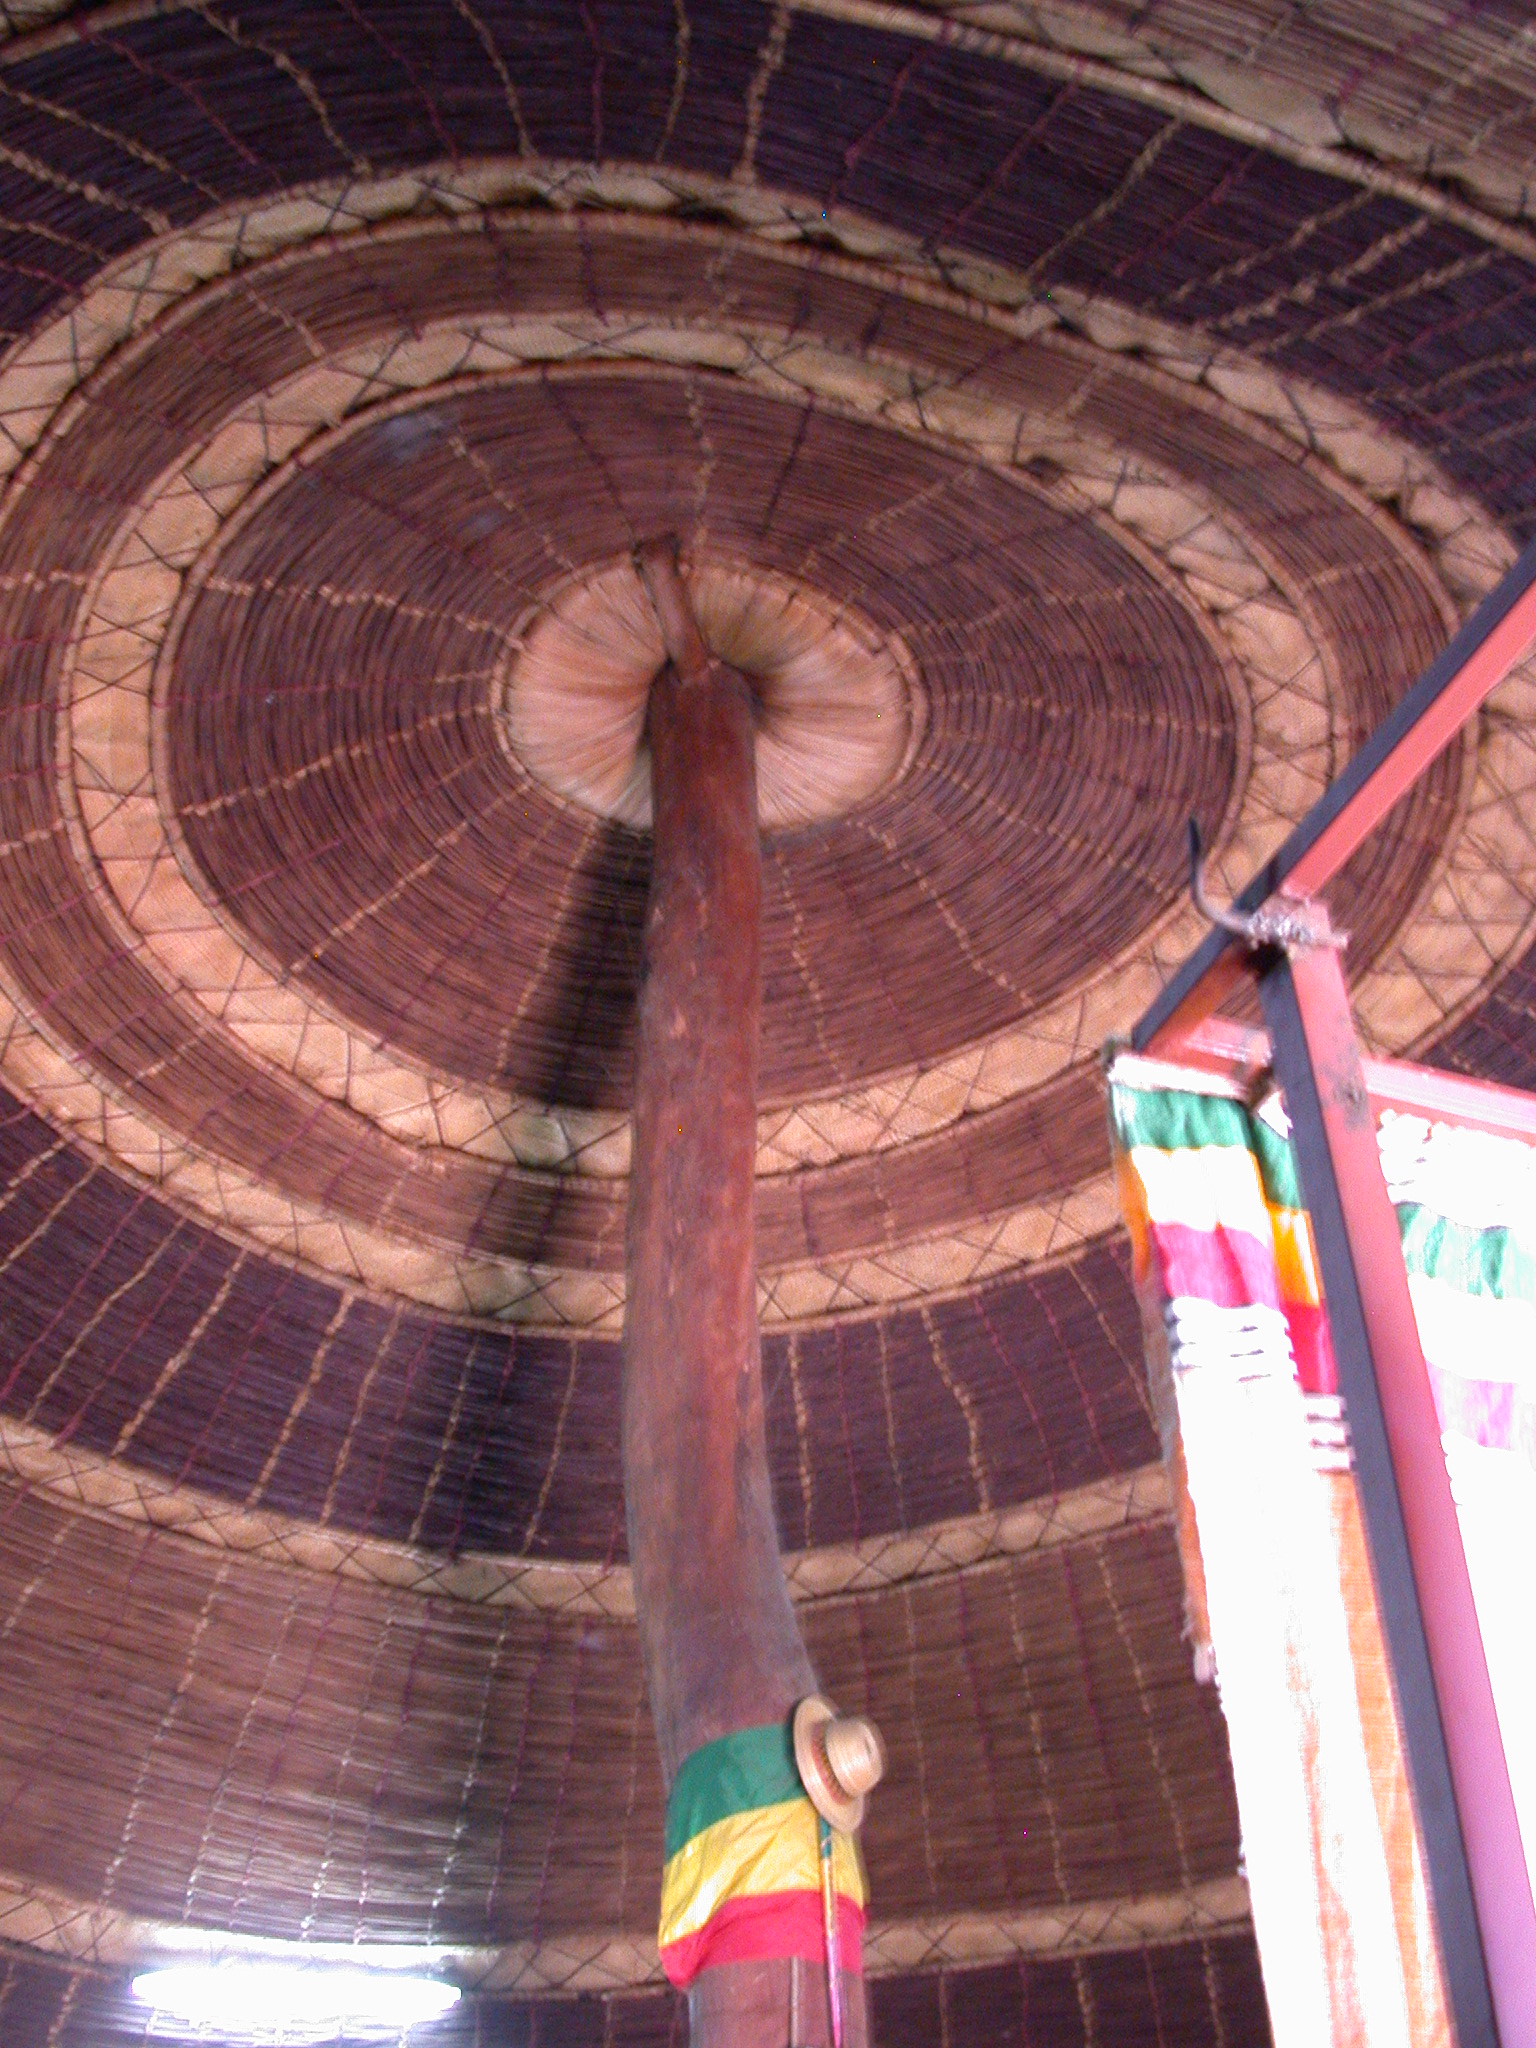 Woven Ceiling of Tukul Cafe Near National Museum, Addis Ababa, Ethiopia